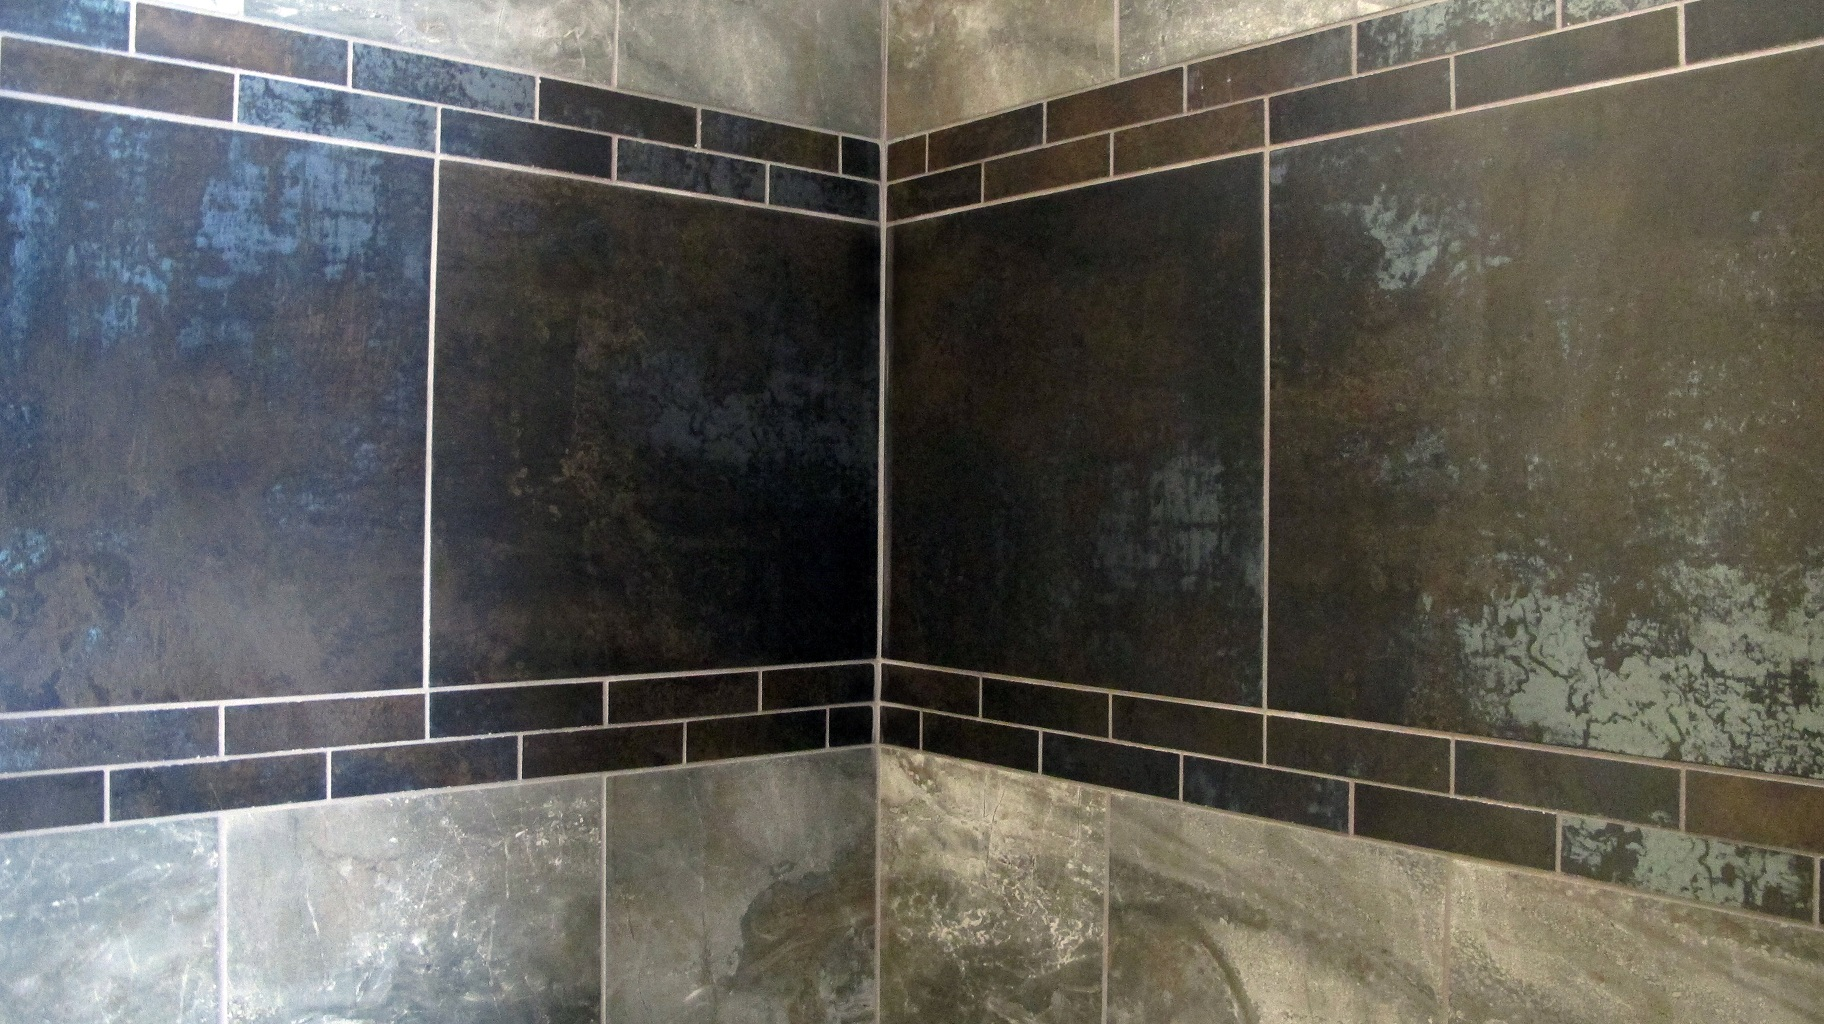 Shower wall tile American olean danya Basin 12x12 field statements metallic antares nero  decorative band large porcelain grey brown modern rustic castle